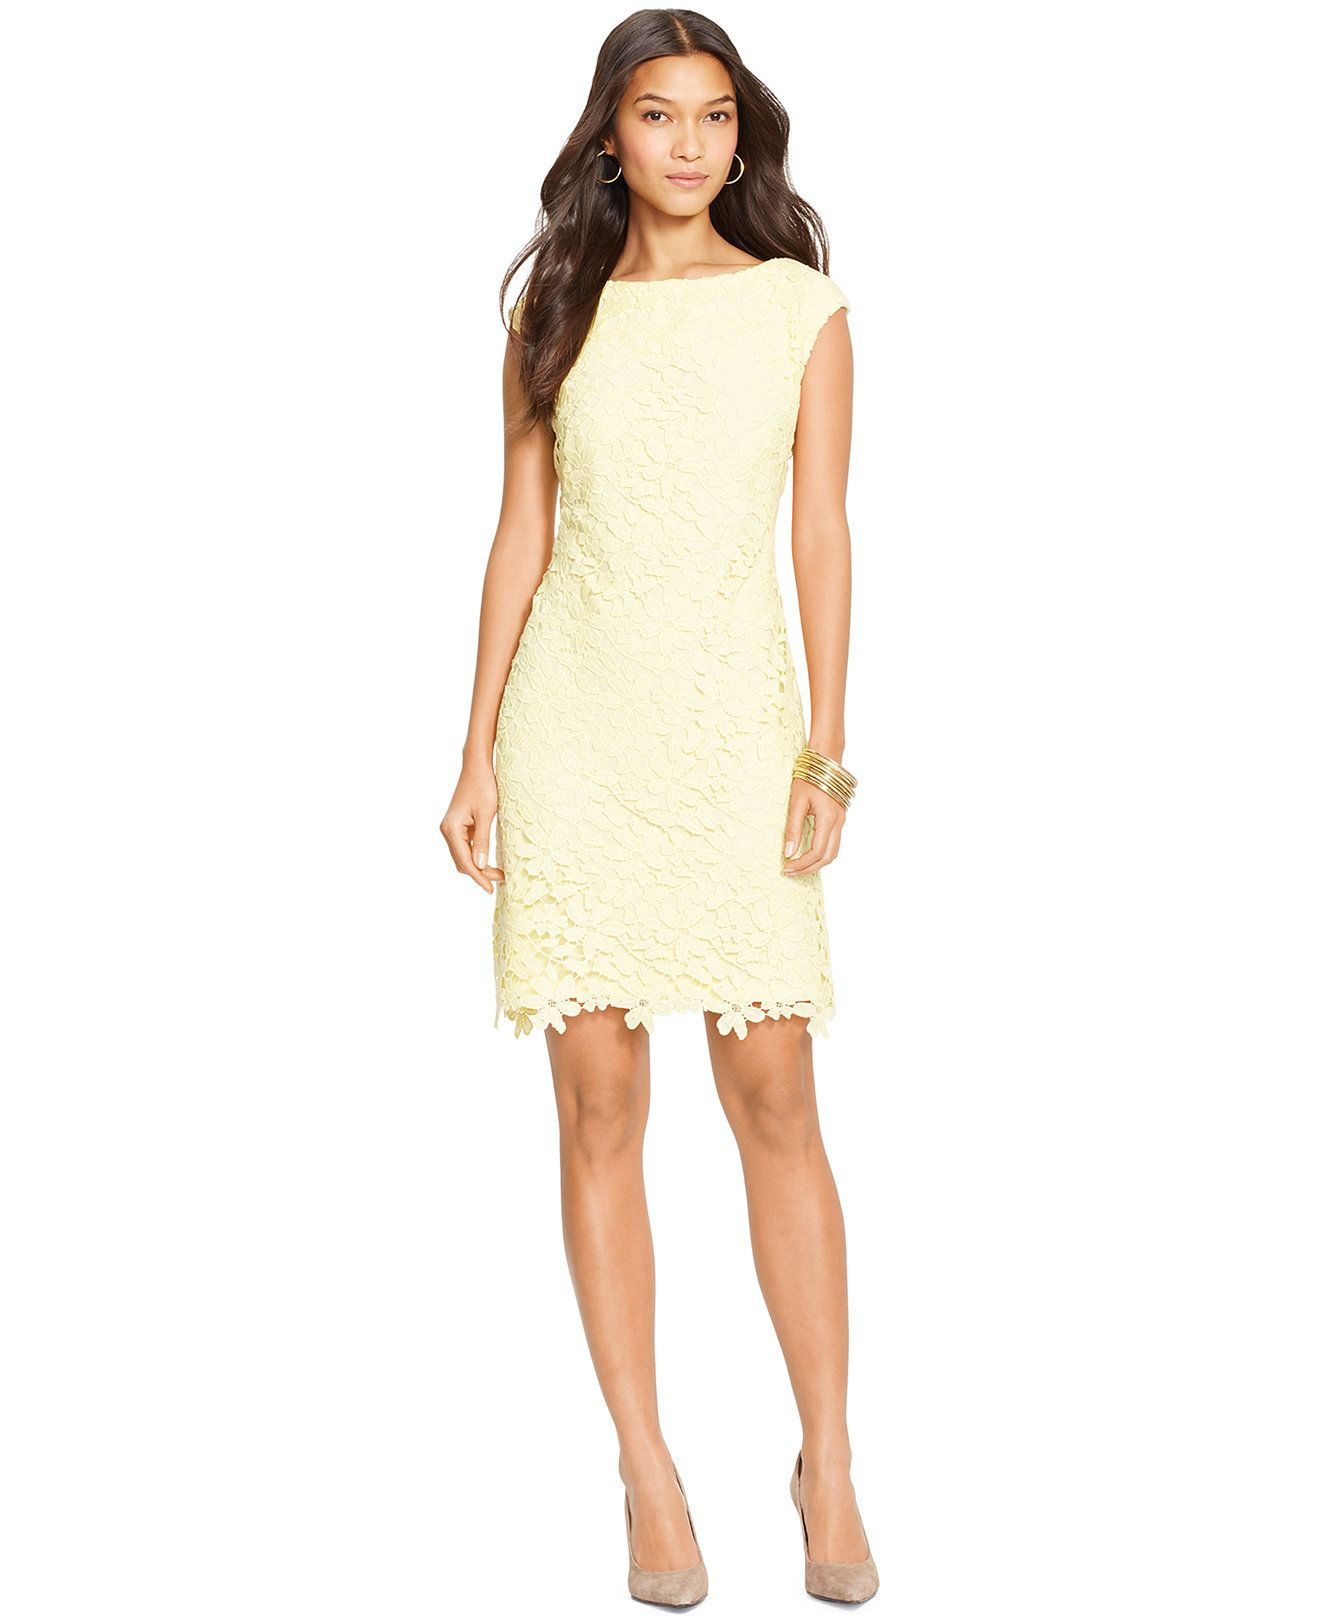 290cf809832 Lauren Ralph Lauren Lace Cap-Sleeve Dress - Dresses - Women - Macy s ...